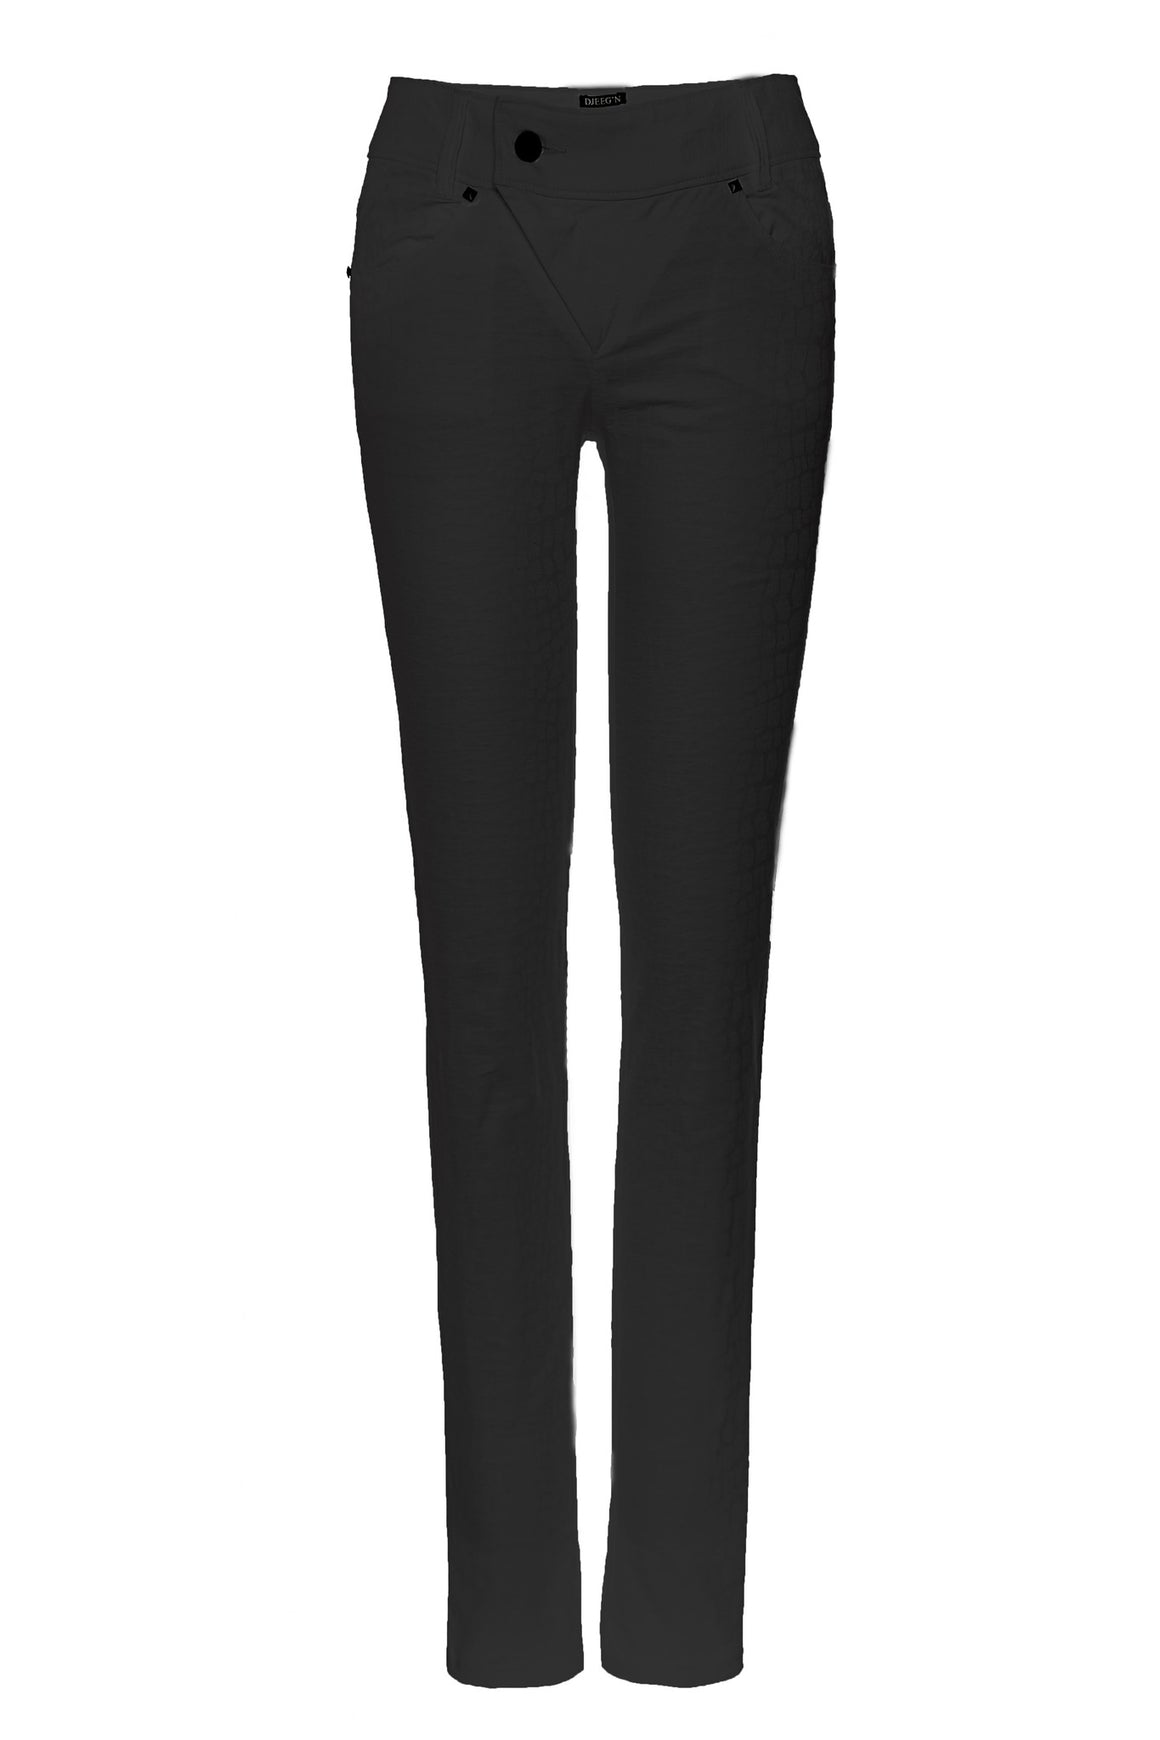 black asymmetrical zipper pants